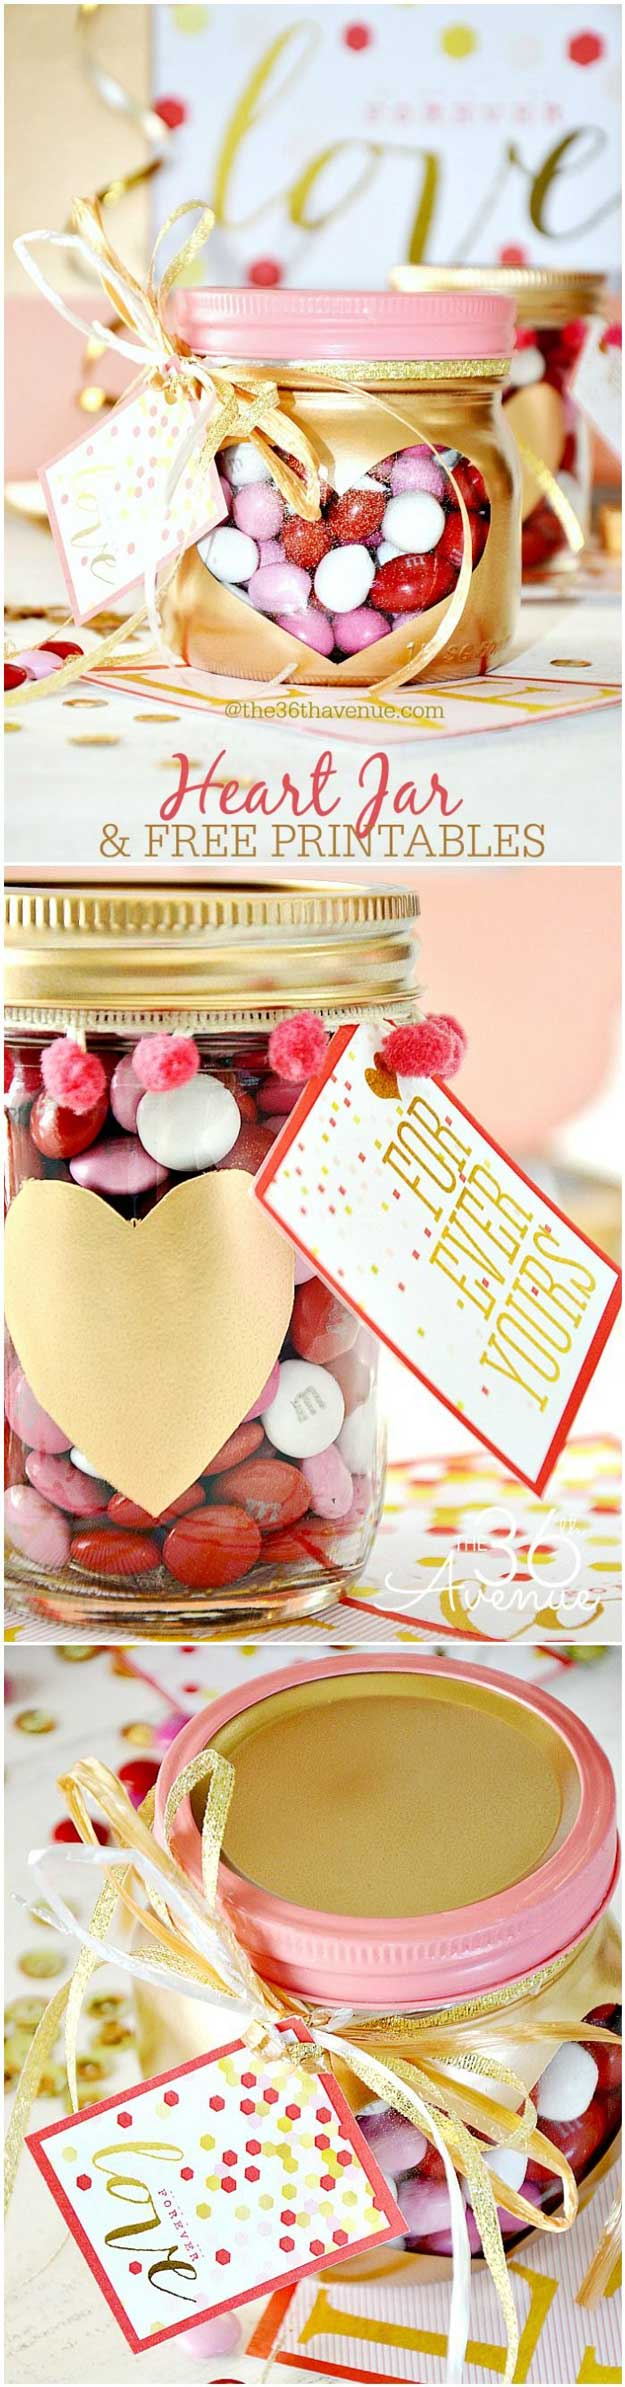 Mason Jar Valentine Gifts and Crafts   DIY Ideas for Valentines Day for Cute Gift Giving and Decor   Heart Jars and Free Printables   #valentines